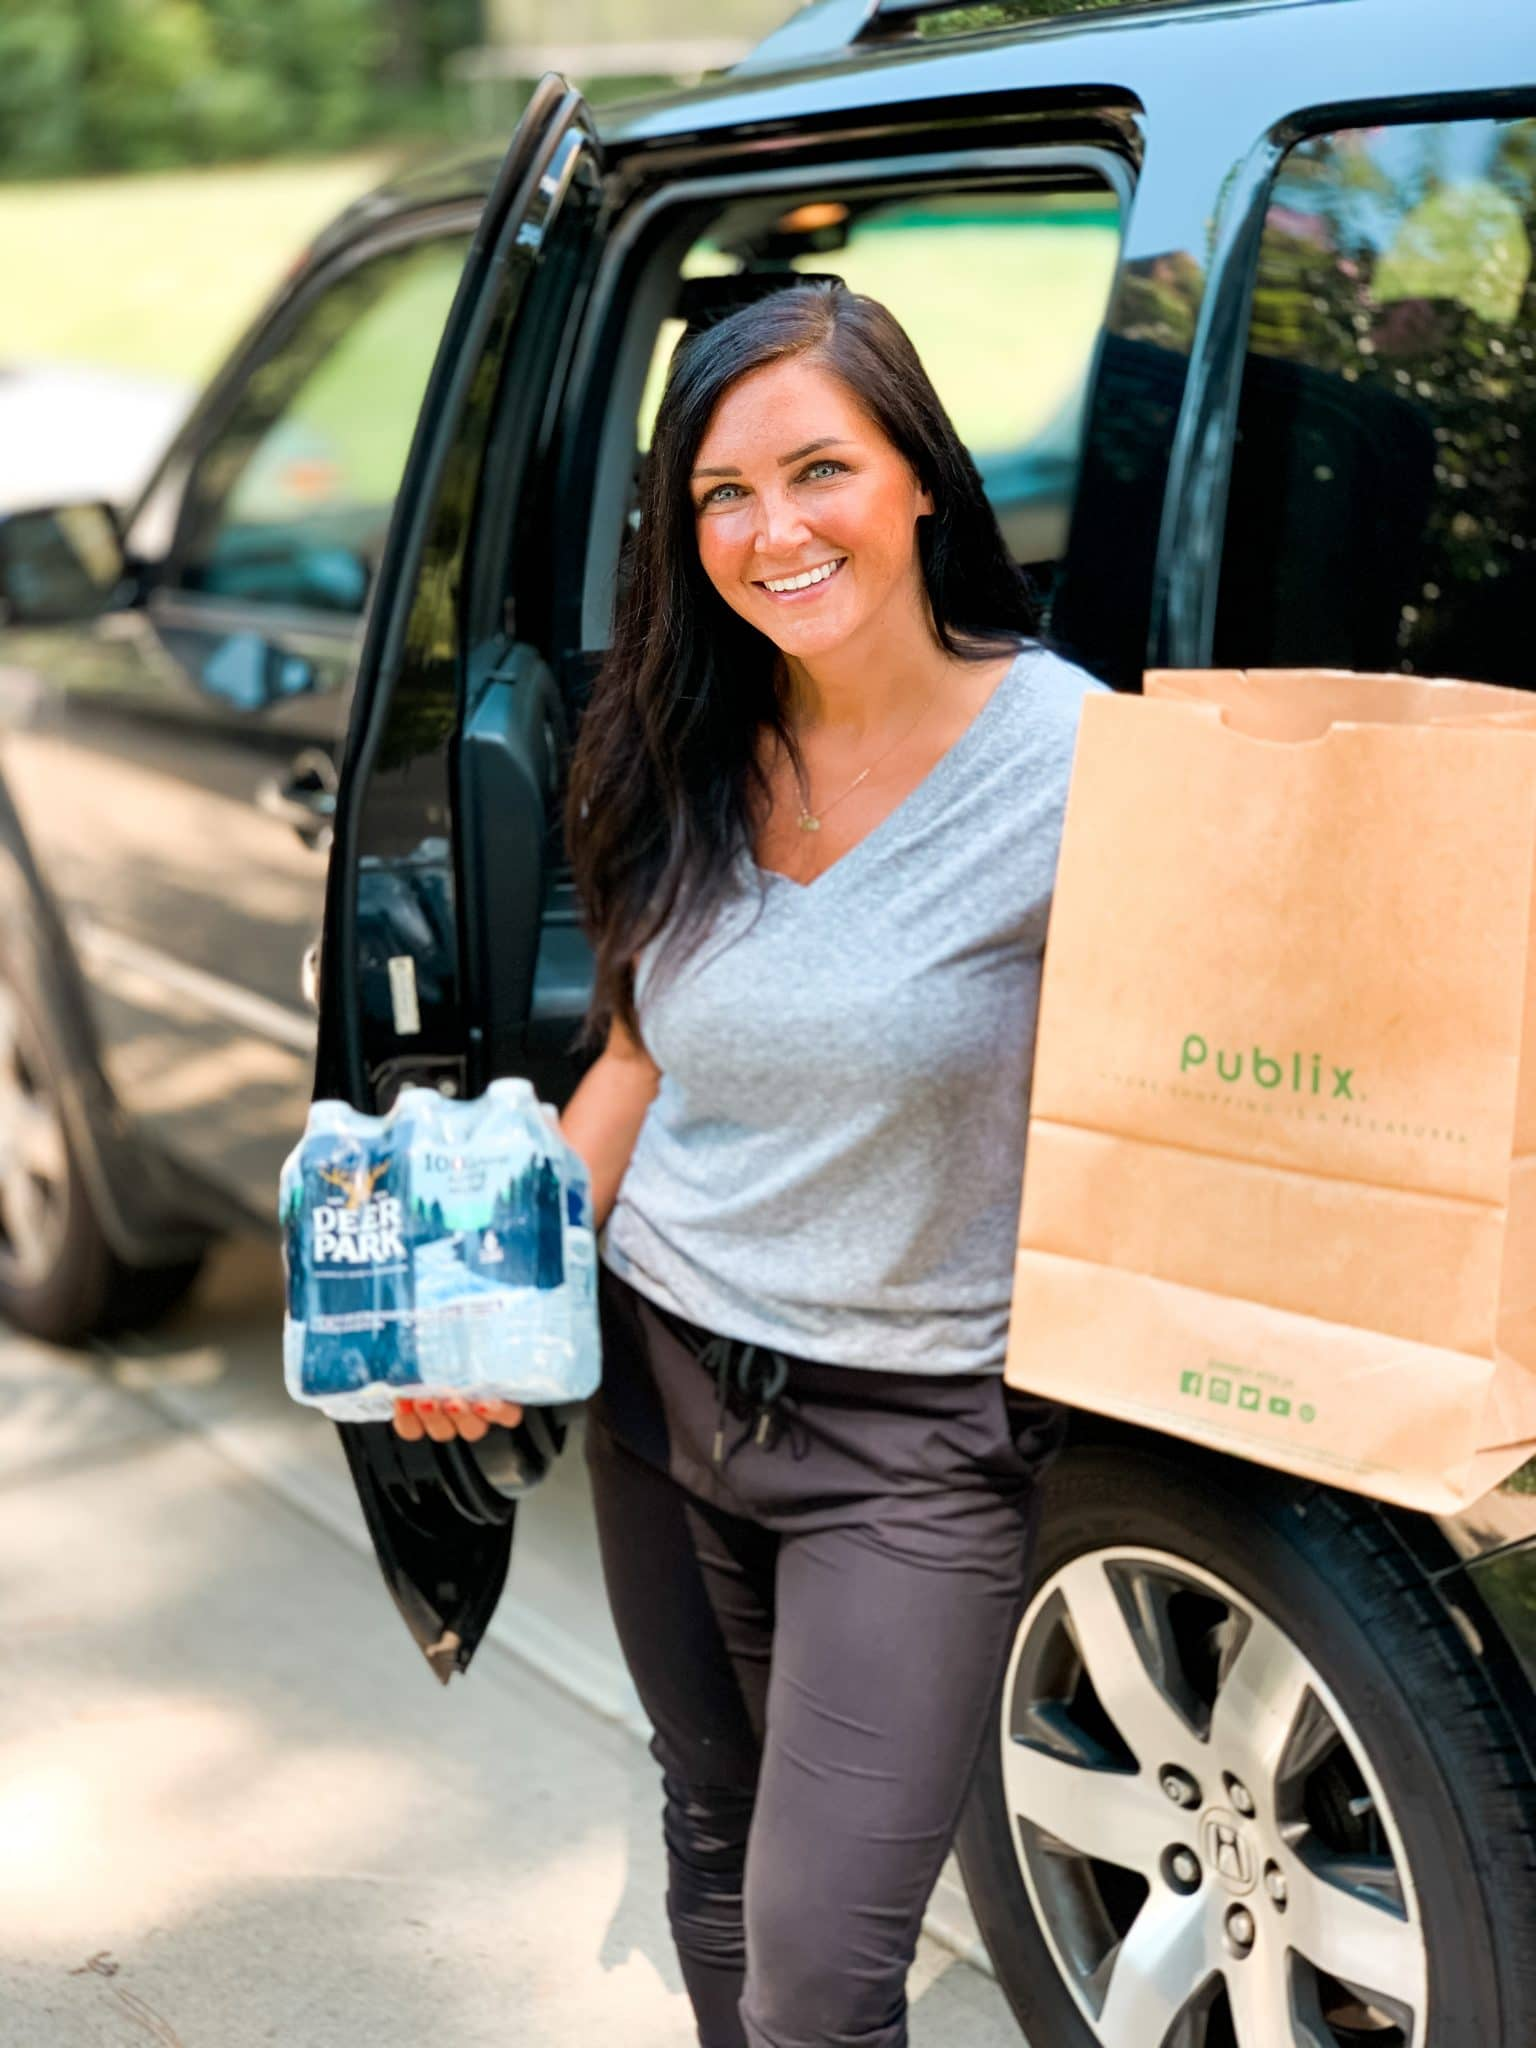 Hurricane Preparedness, How to prep for hurricane season with Publix, Stilettos and Diapers